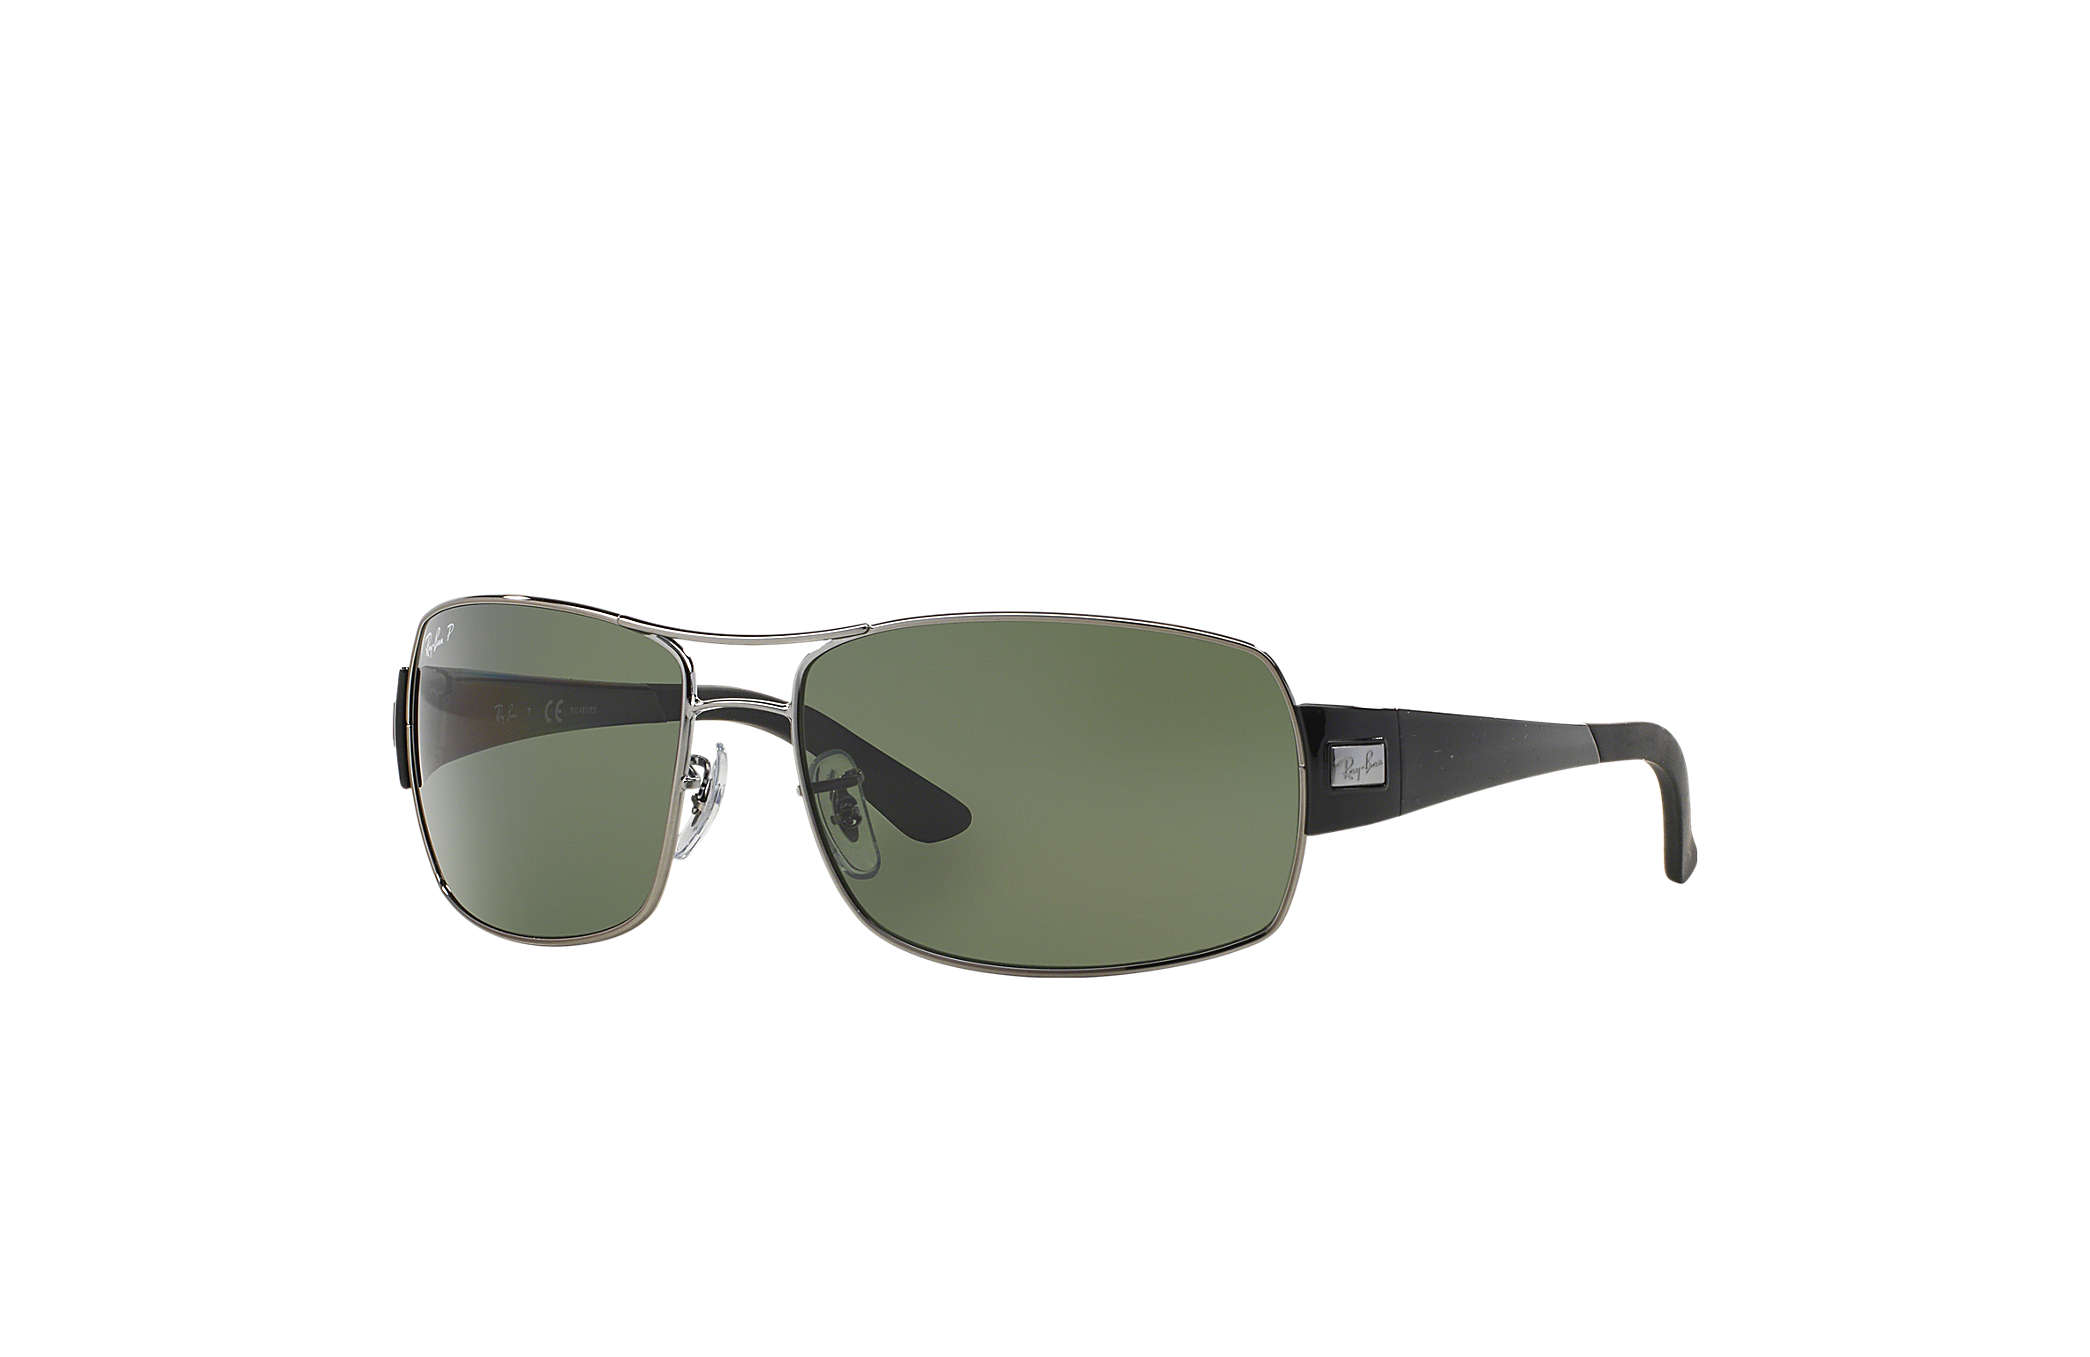 945184746d Ray Ban Sunglasses RB 3426 RB3426 004 82 Metal - Acetate .